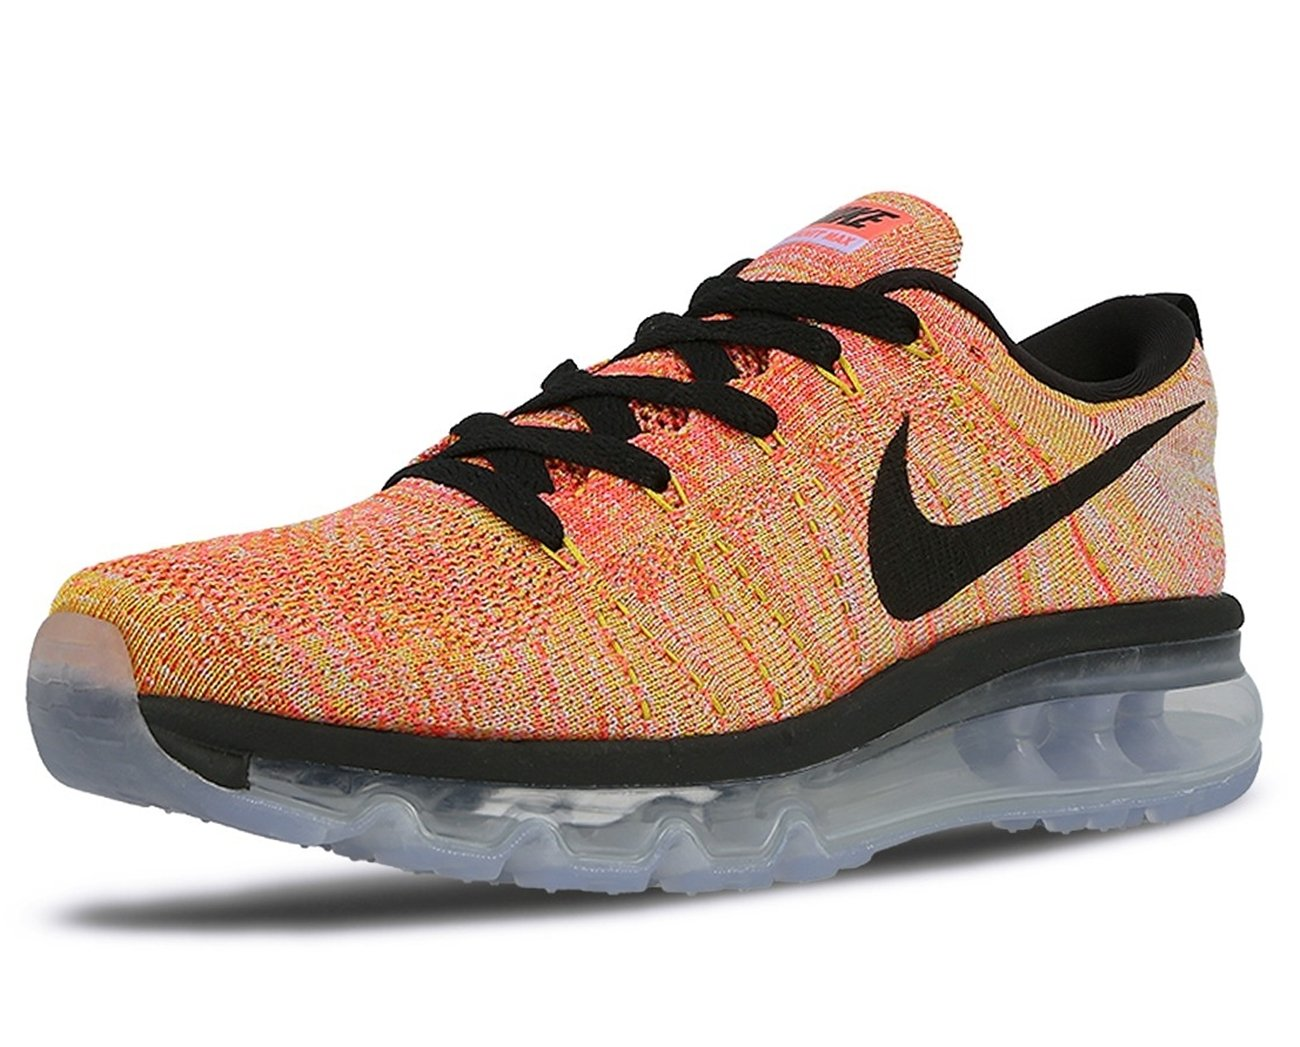 deacaead67590 Galleon - Nike Flyknit Air Max Womens Running Trainers 620659 Sneakers Shoes  (US 9.5